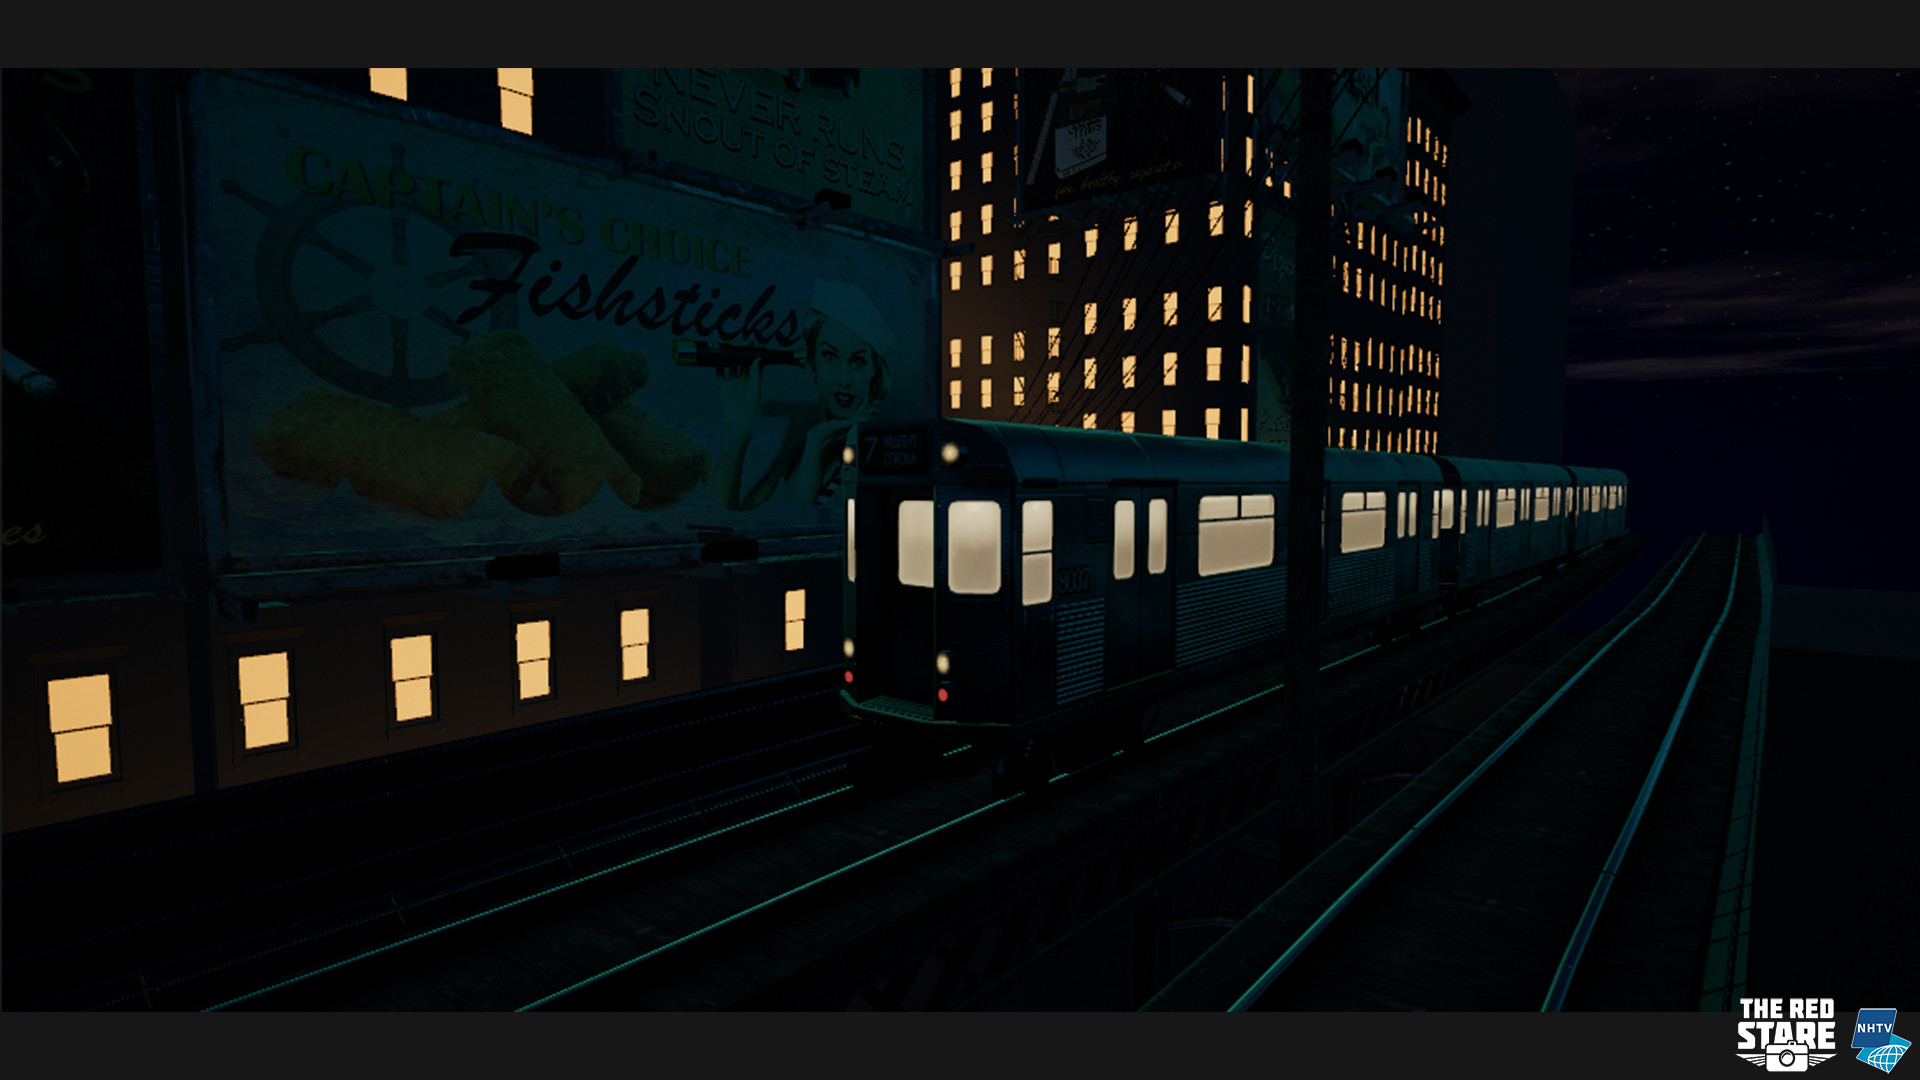 The subway at night, maybe the interior lights could be a bit warmer.